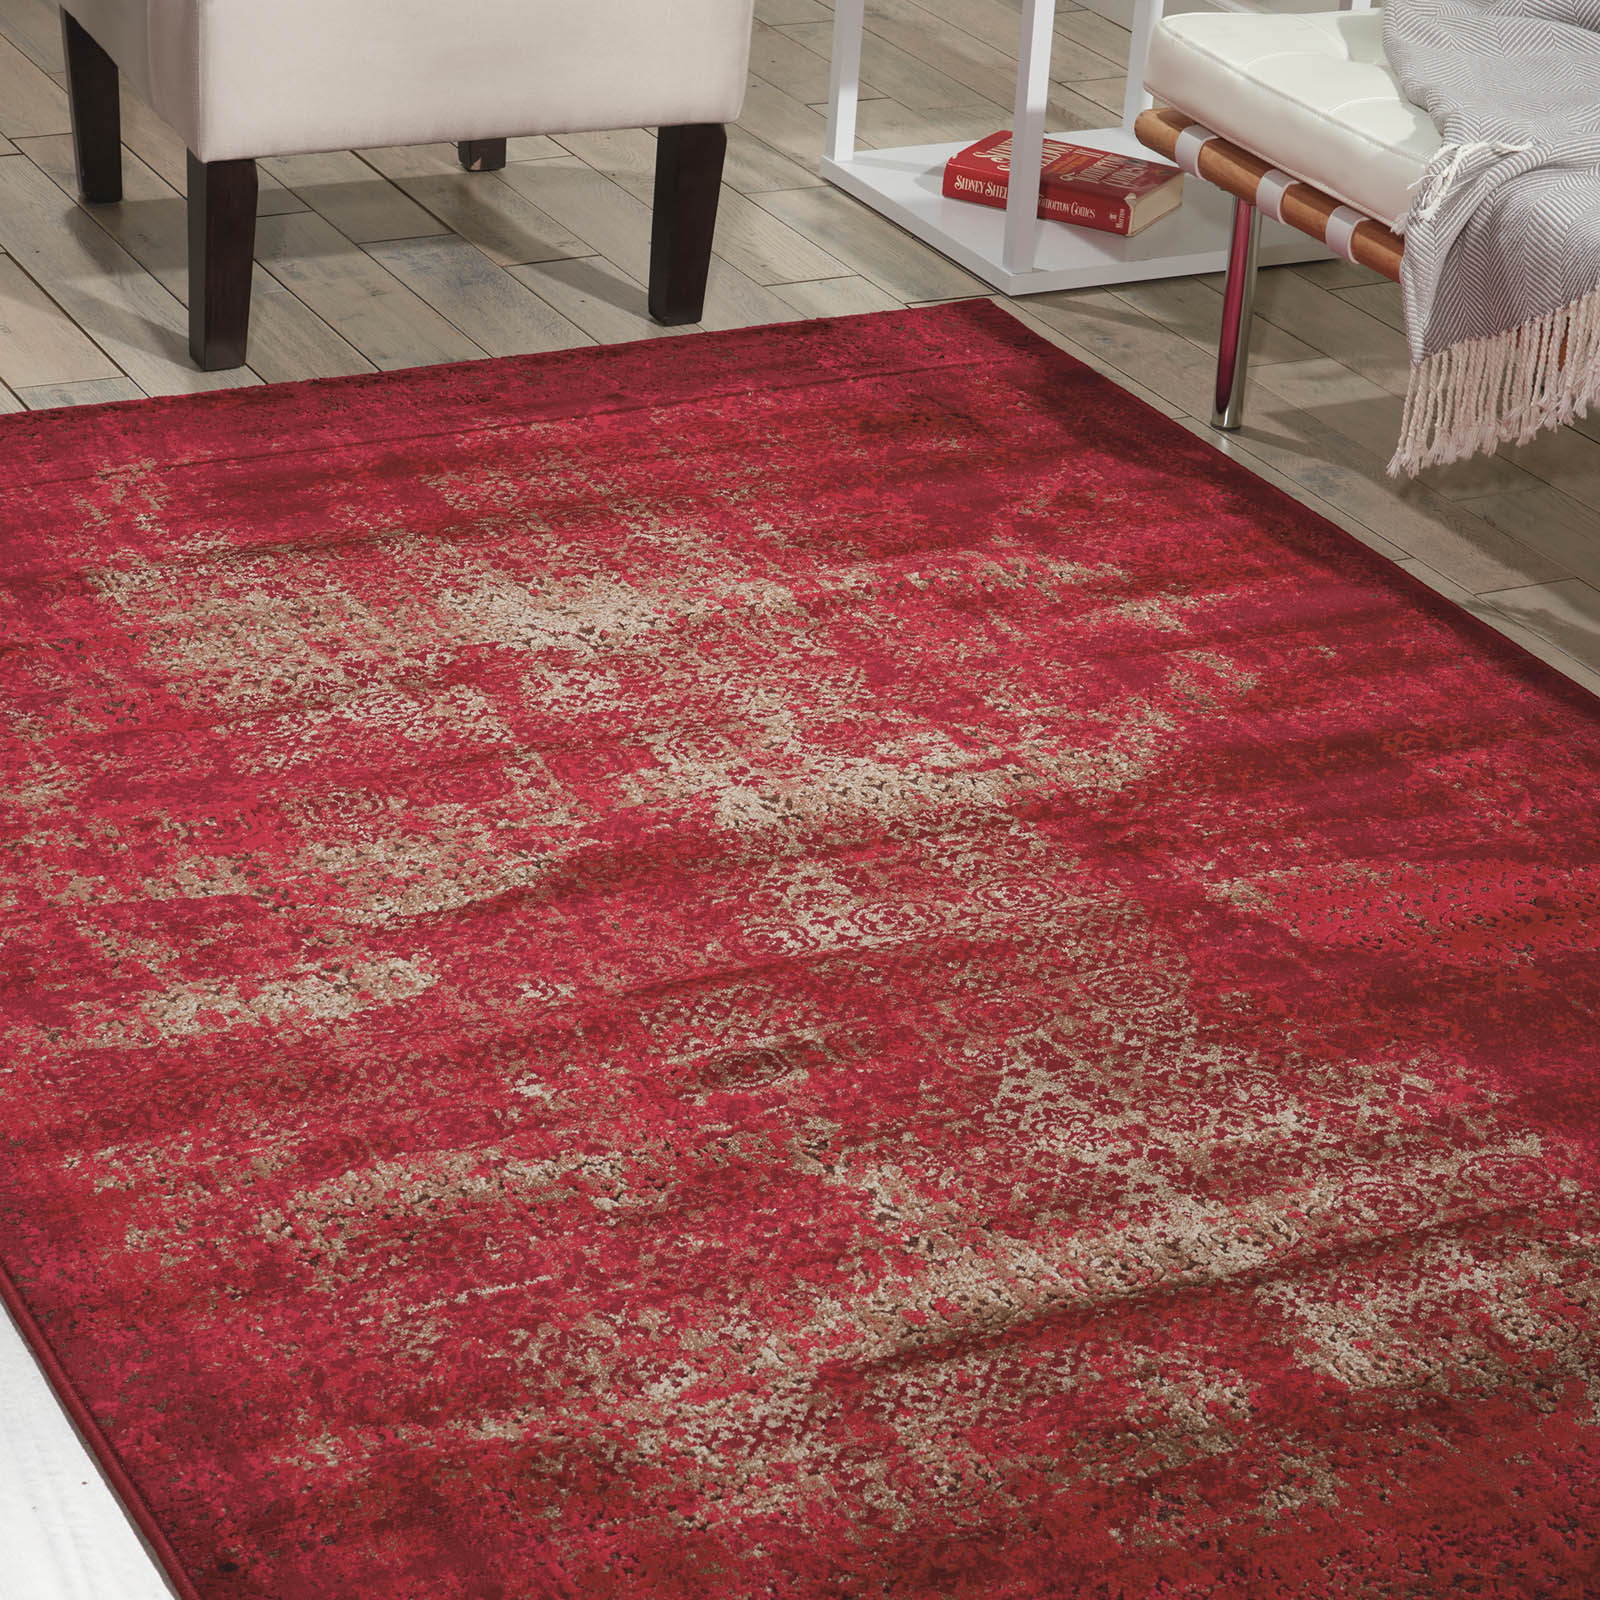 Karma Rugs KRM01 in Red